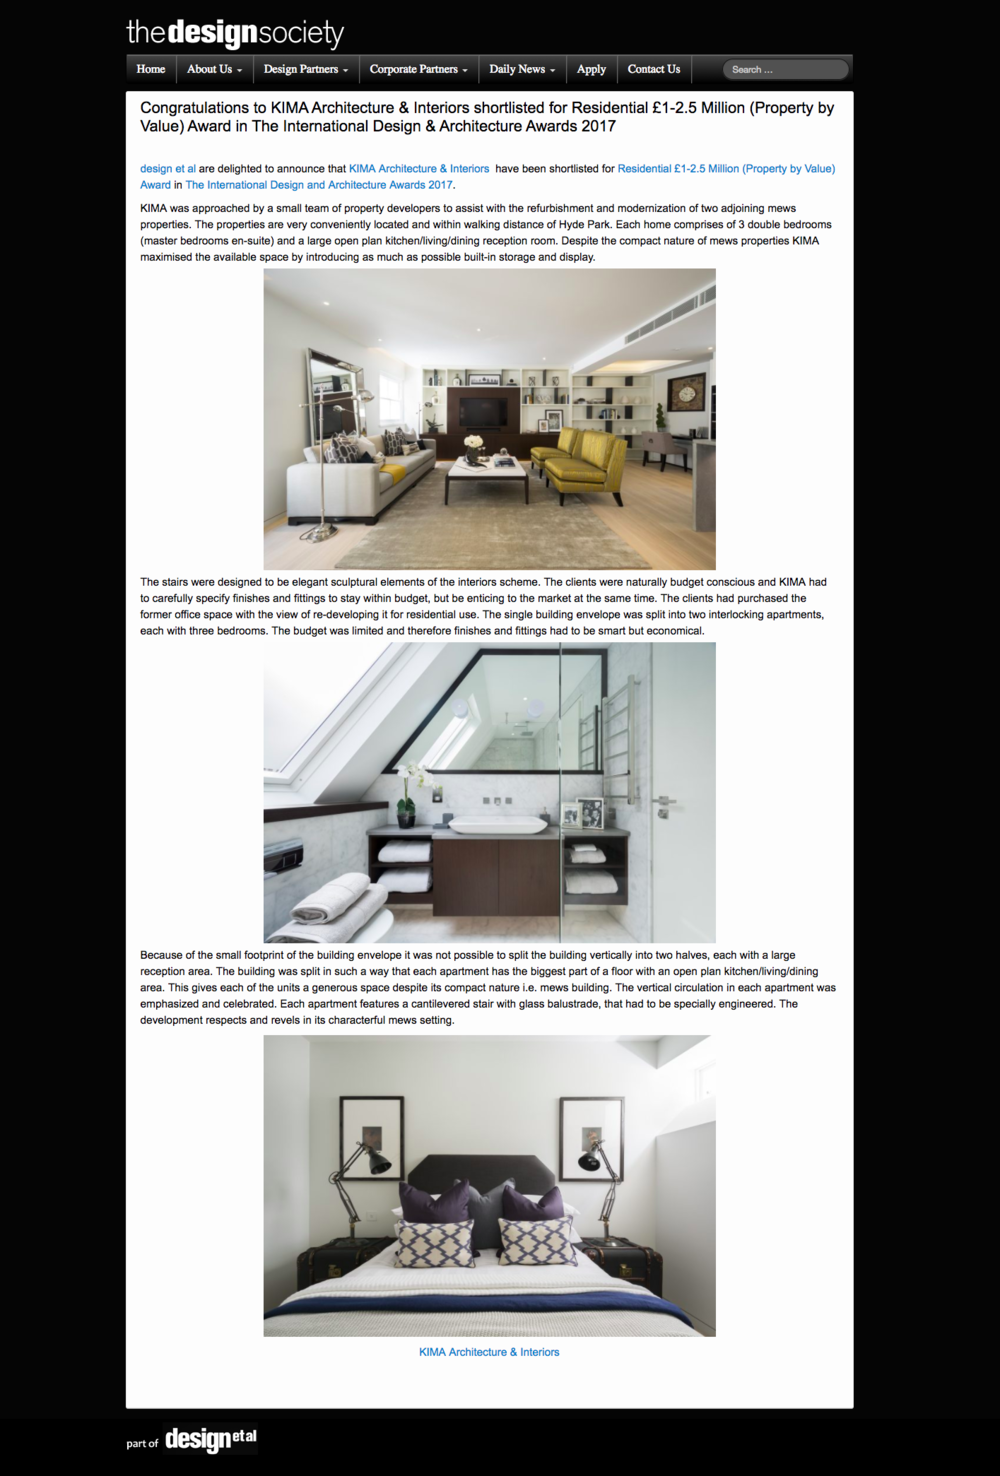 screencapture-thedesignsoc-congratulations-kima-architecture-interiors-shortlisted-residential-1-2-5-million-property-value-award-international-design-architecture-awards-2017-1507837201308 copy.png